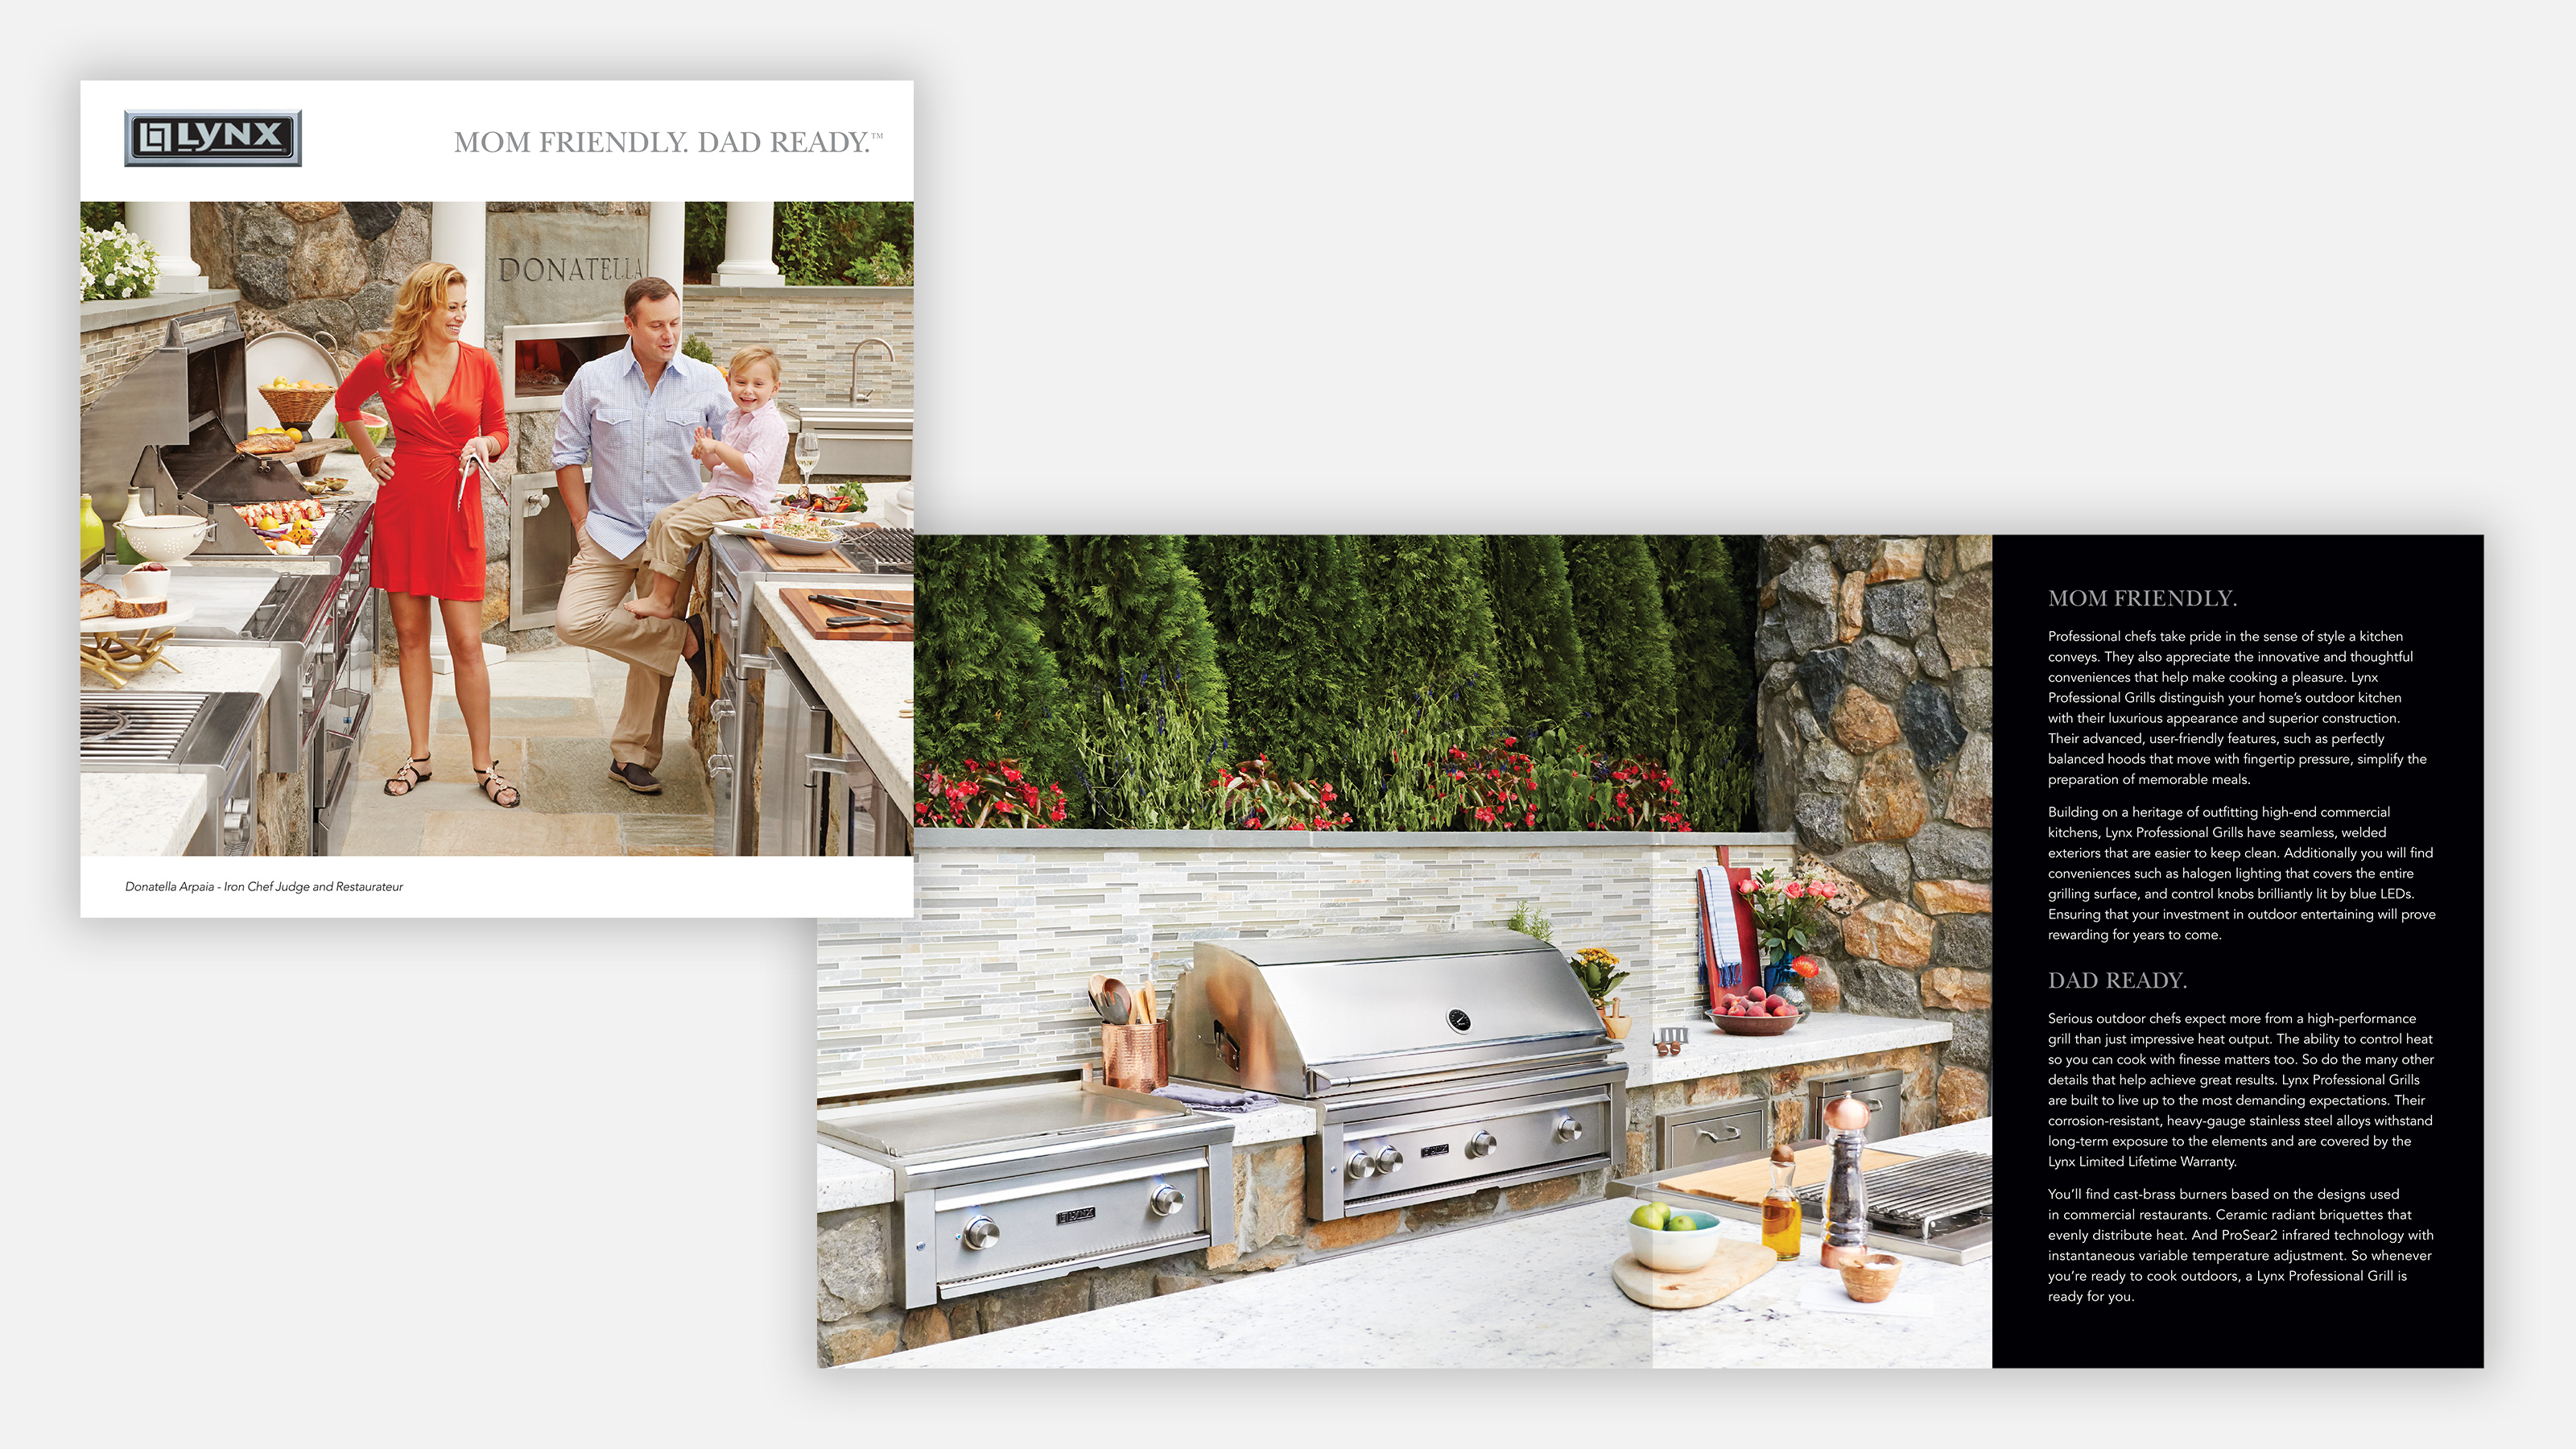 lynx grills marketing brochures about outdoor kitchens